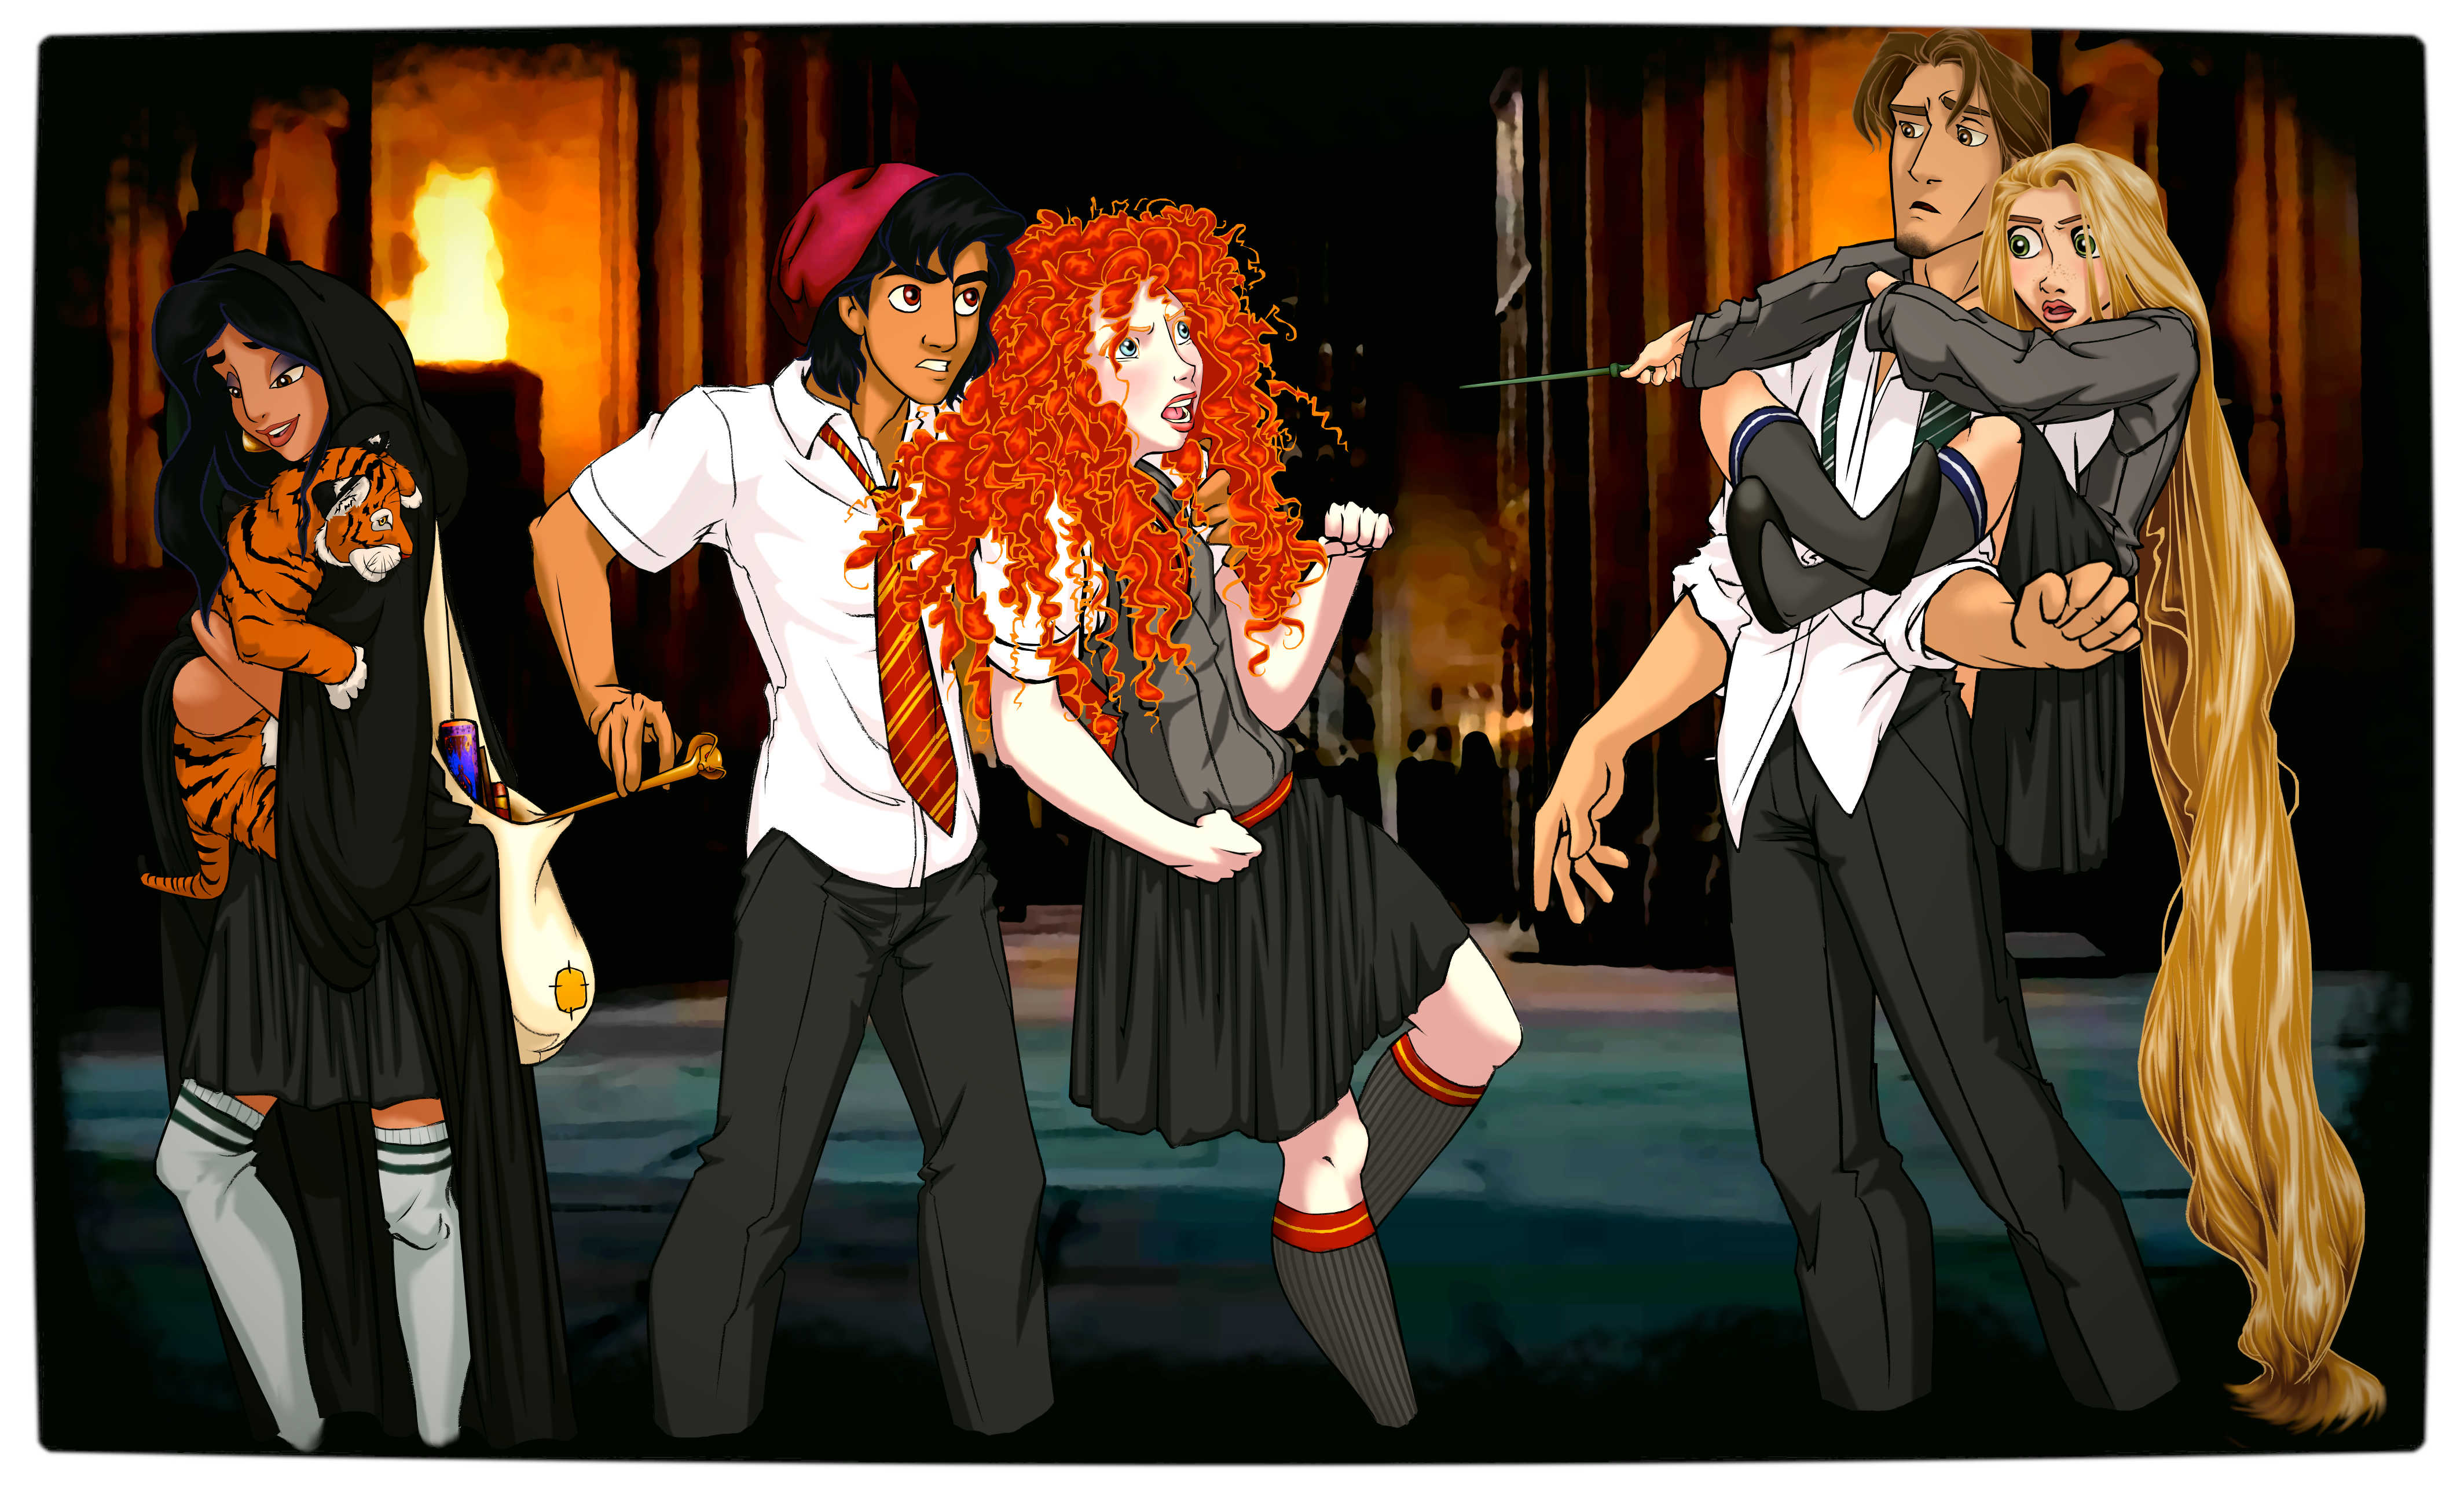 Vamers - Artistry - Mash-Up - 'Disney at Hogwarts' Imagines Disney Royalty as Harry Potter's Peers - Art by Eira1893 - Disney at Hogwarts 03